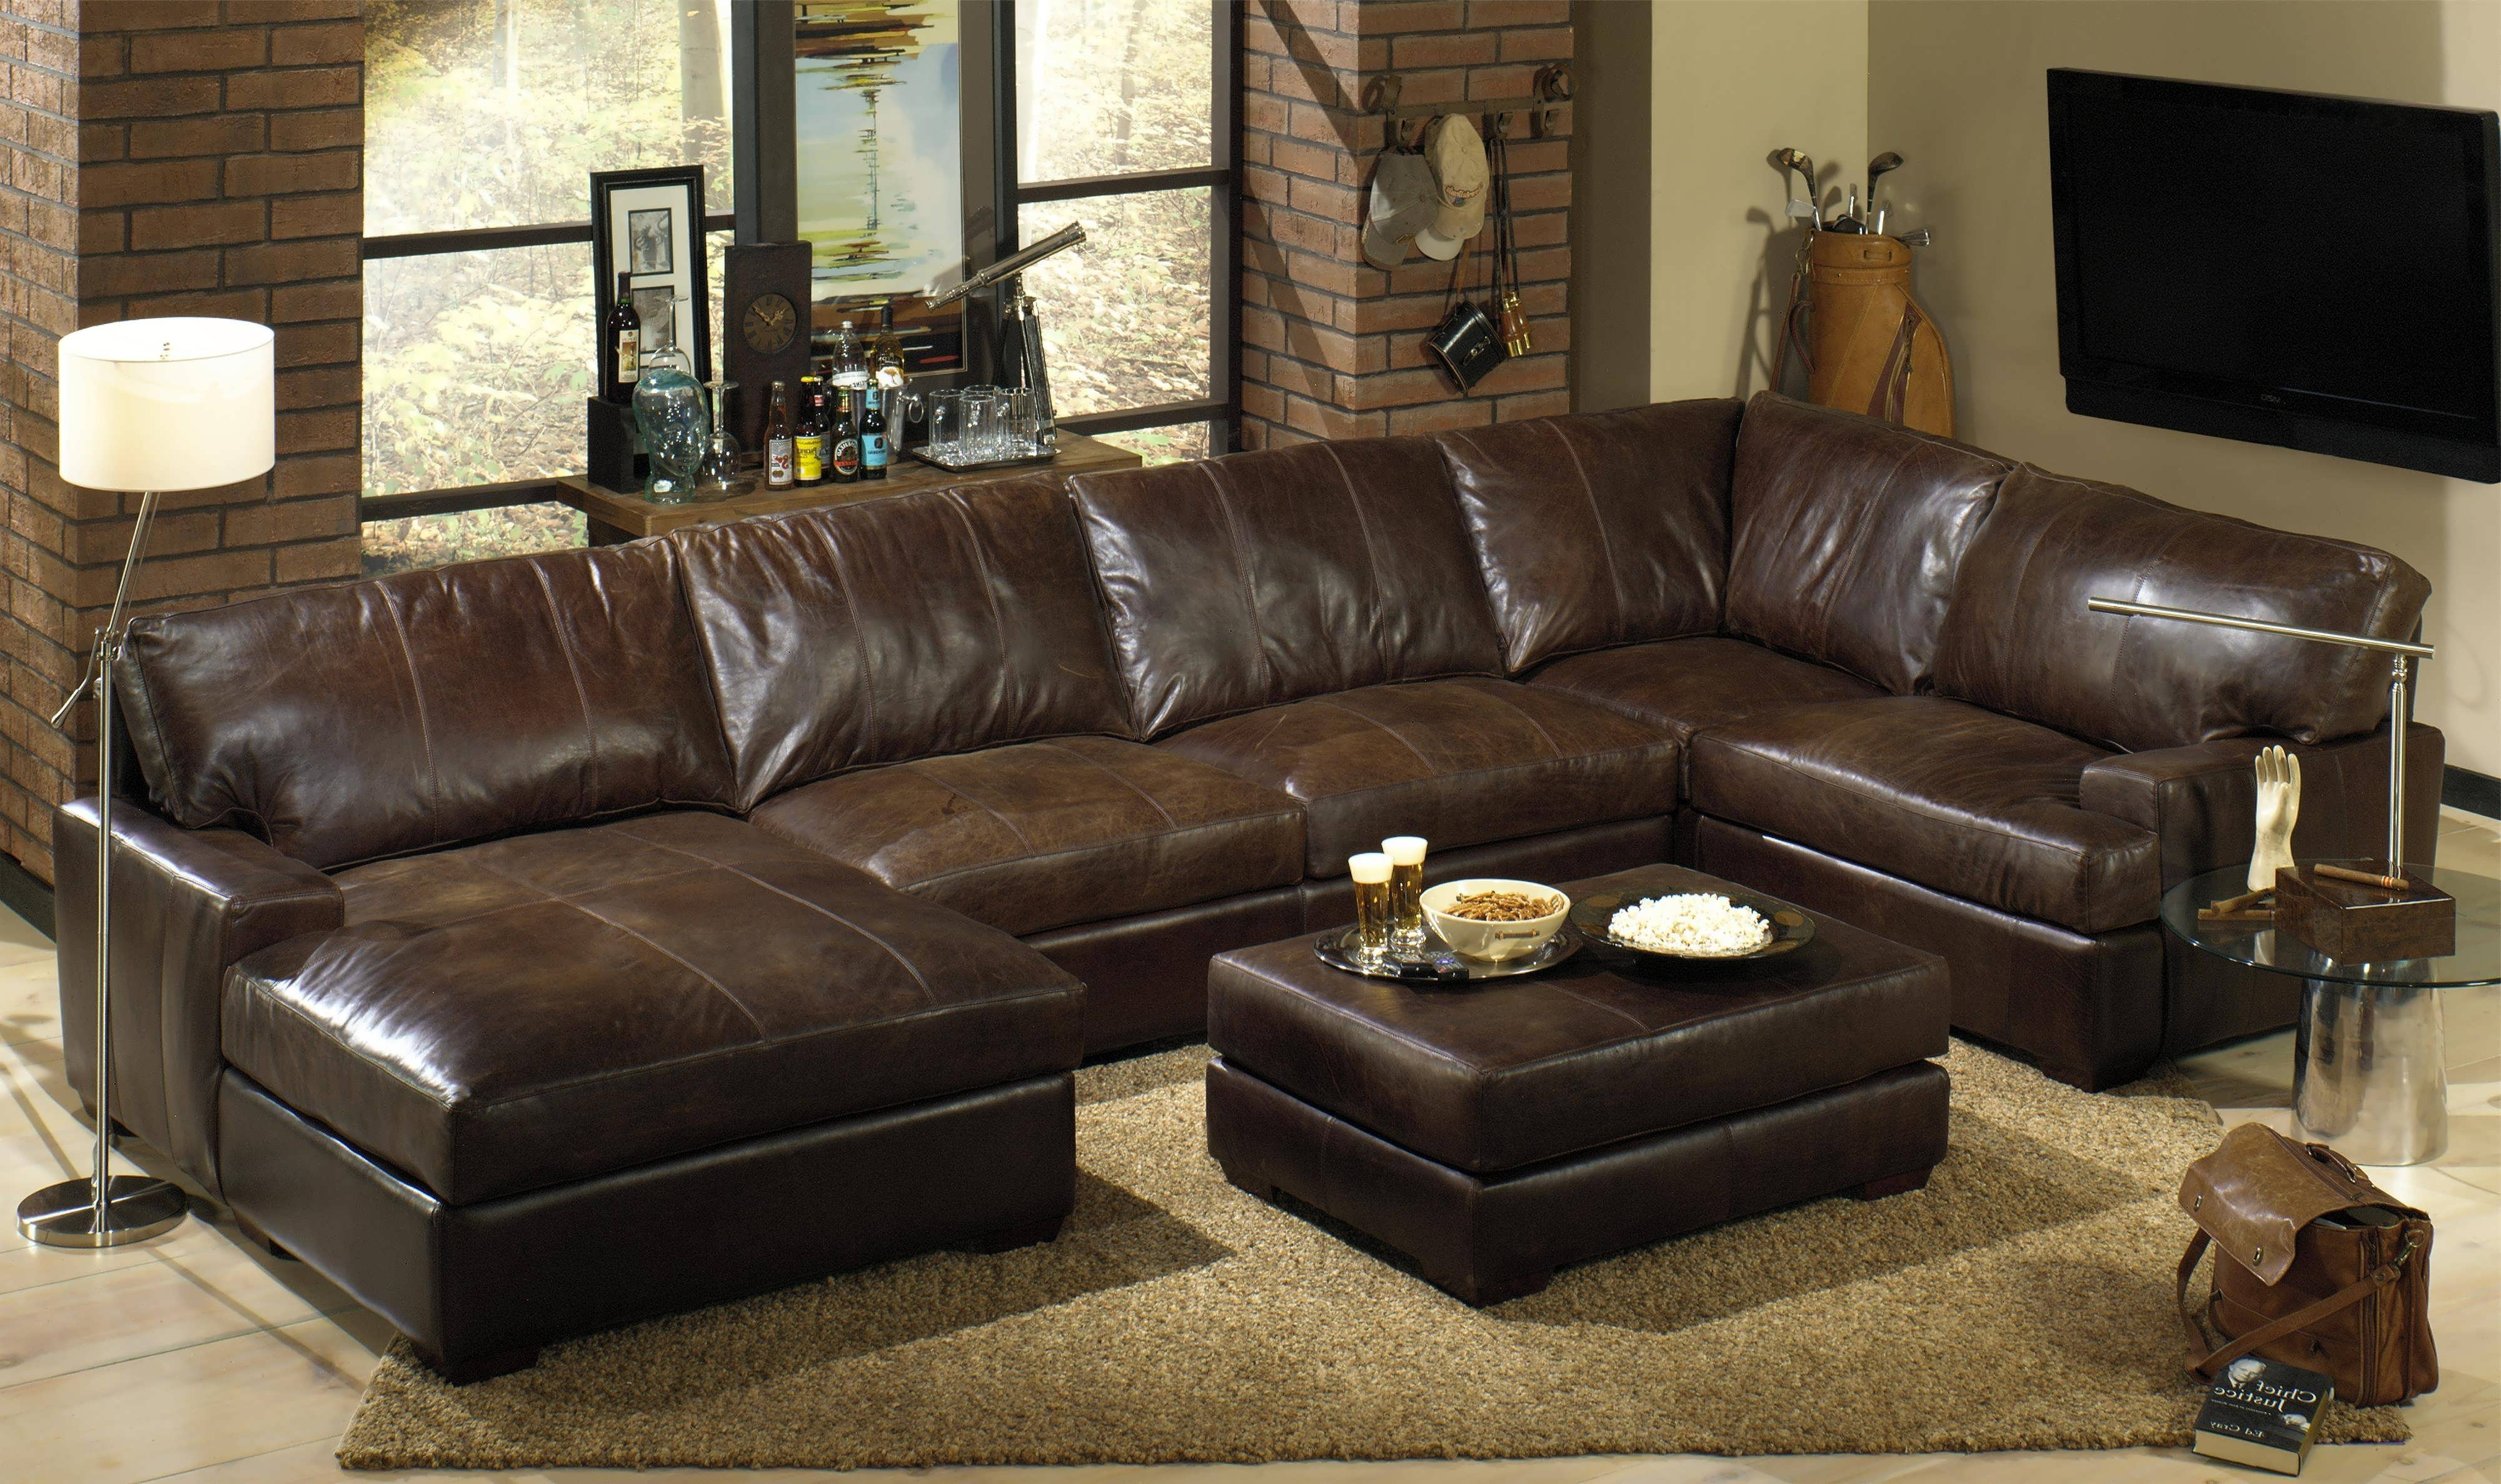 Sofa : Sofas And Sectionals Corner Couch Modular Couch Sleeper inside Most Popular Small Leather Sectionals With Chaise